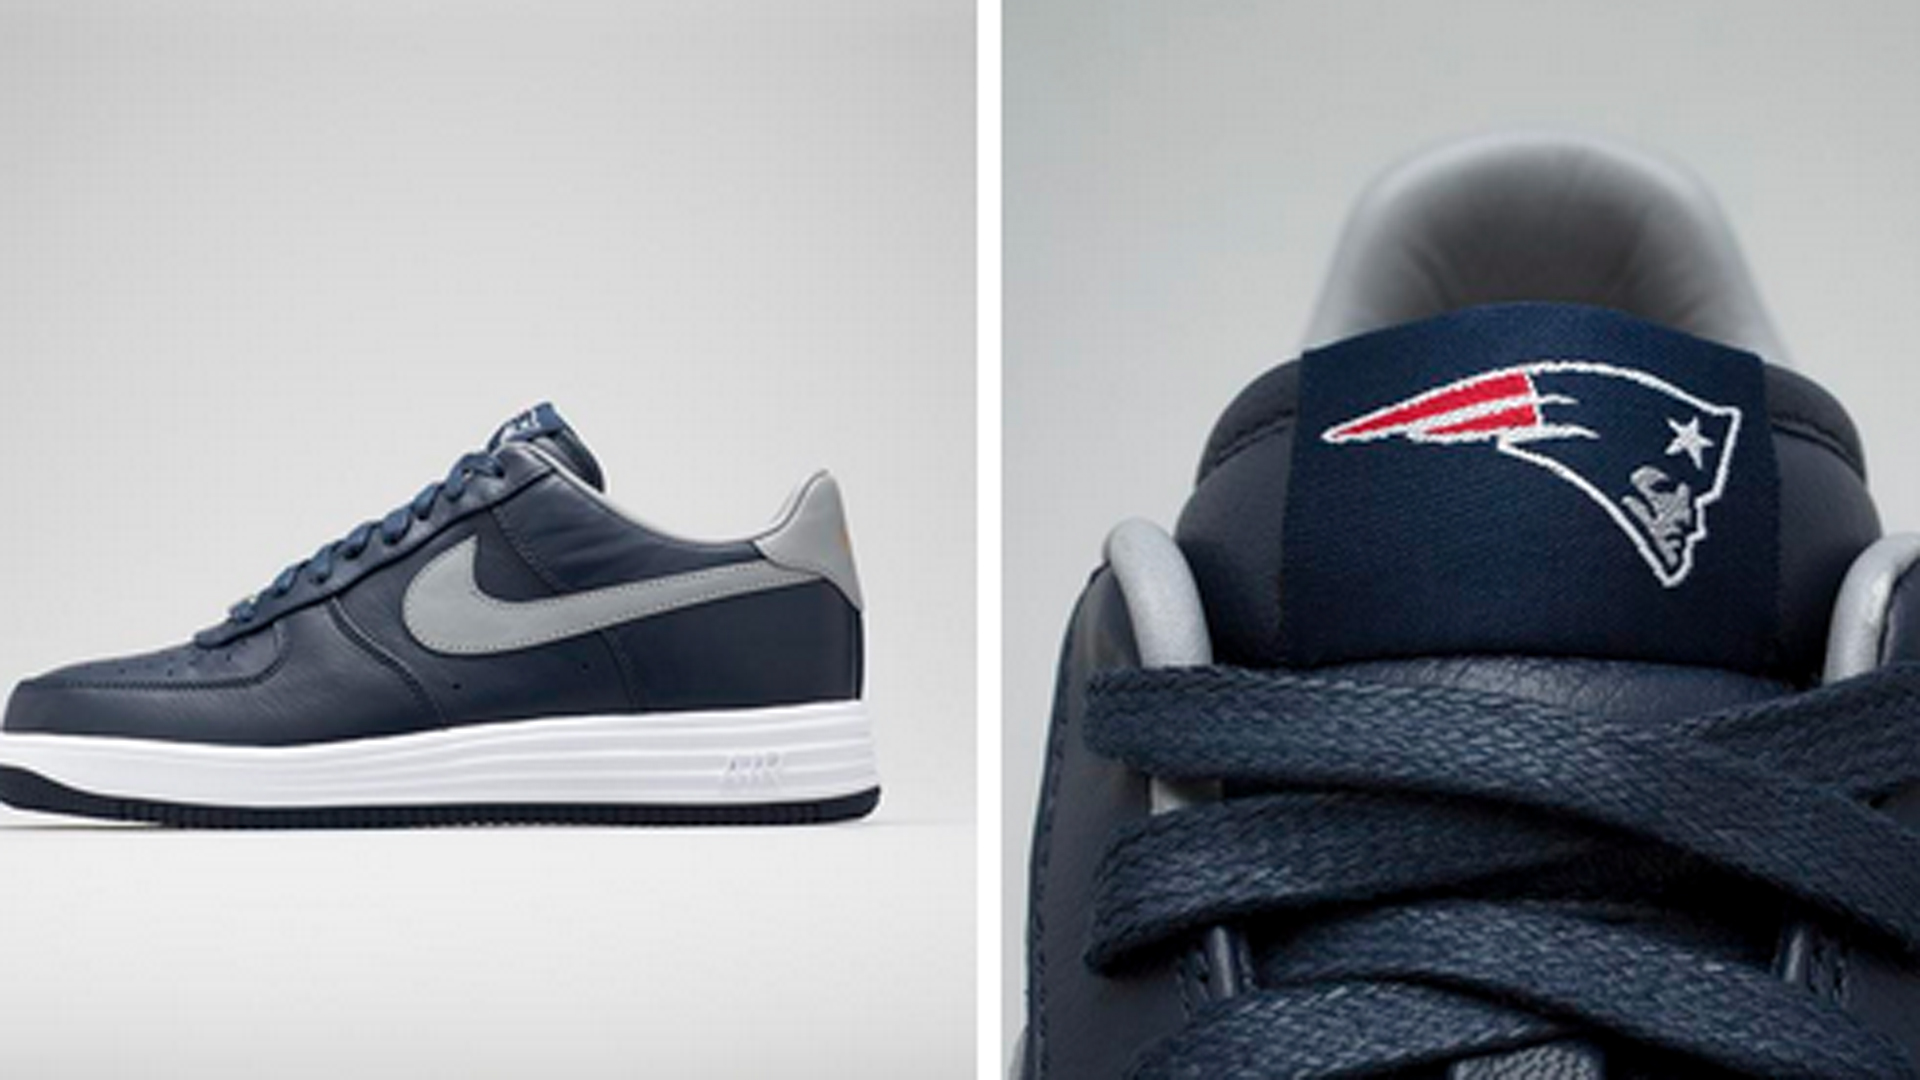 Nike releases limited edition shoes for Patriots' Robert